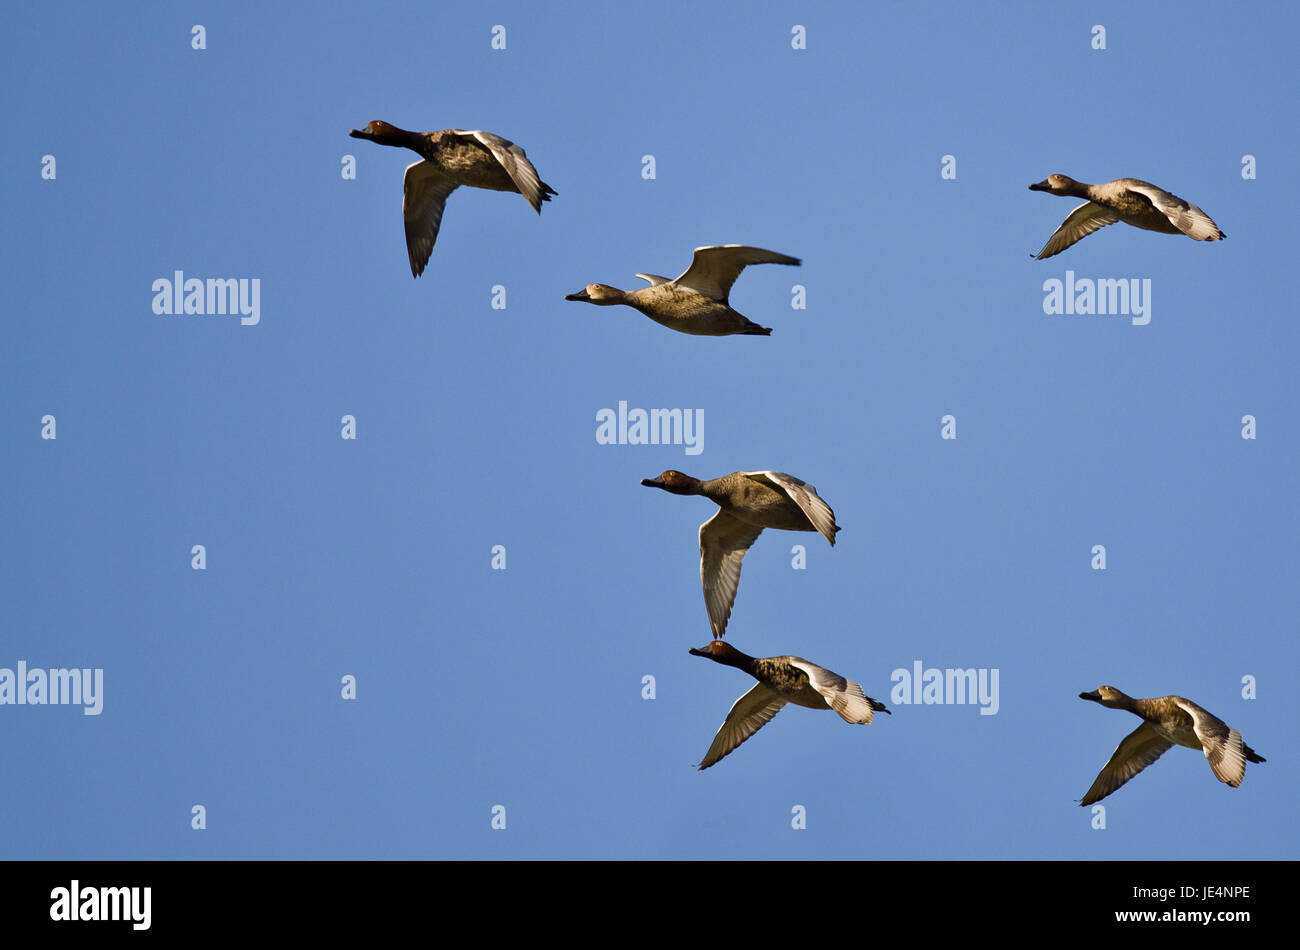 Flock of Redheads Flying in a Blue Sky - Stock Image